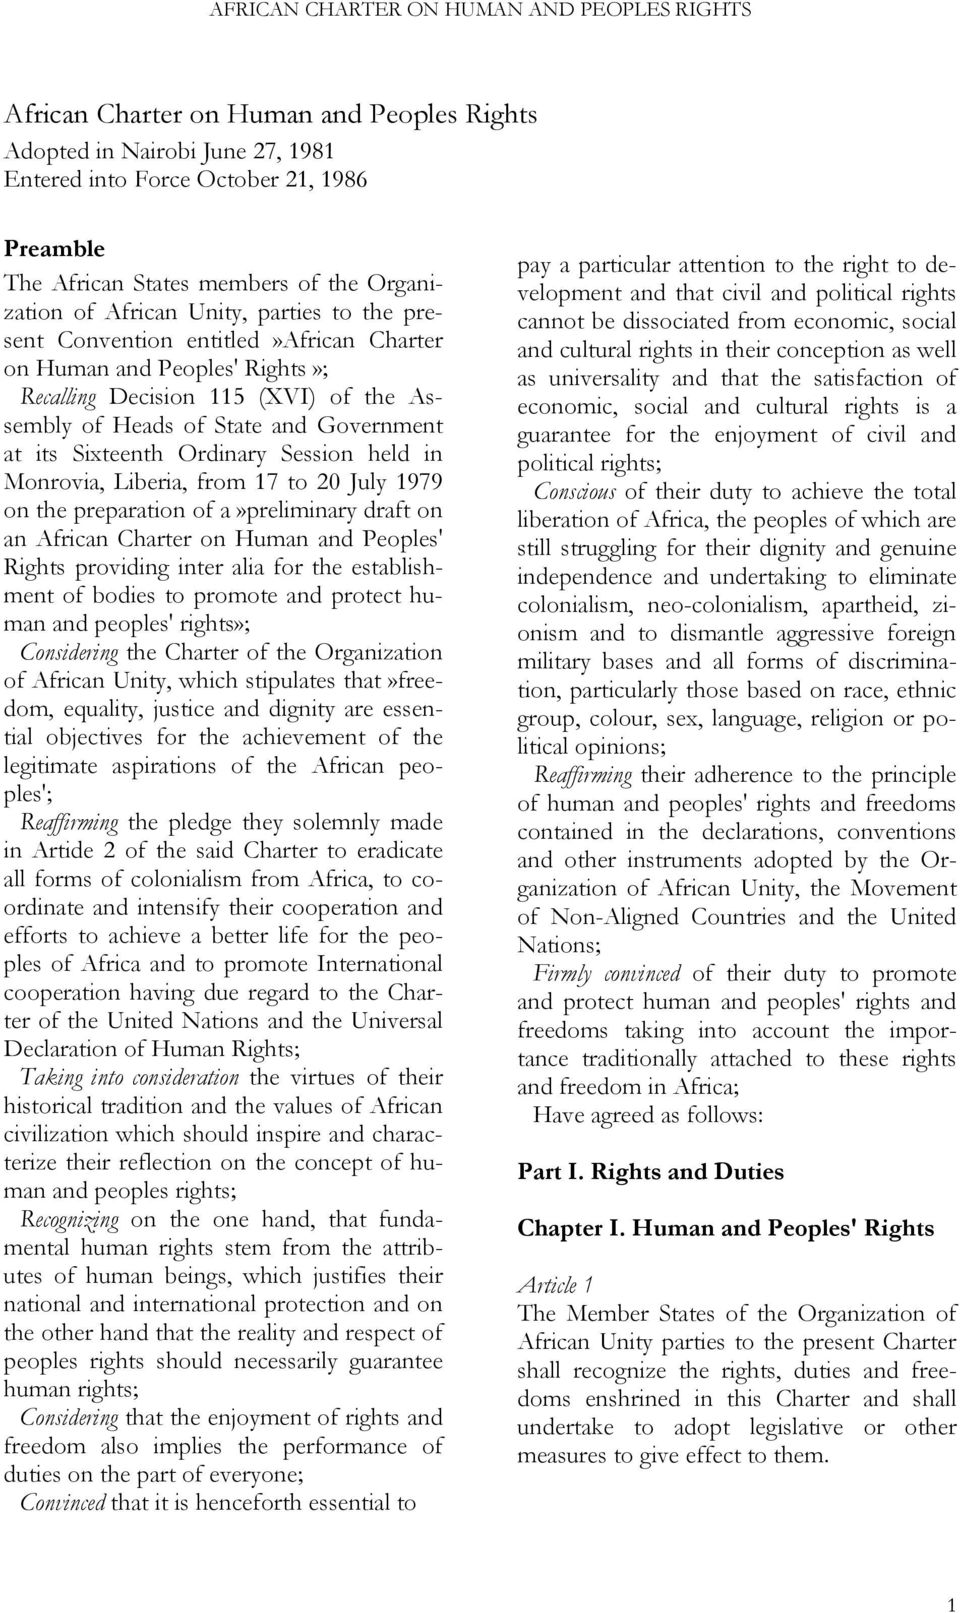 Monrovia, Liberia, from 17 to 20 July 1979 on the preparation of a»preliminary draft on an African Charter on Human and Peoples' Rights providing inter alia for the establishment of bodies to promote